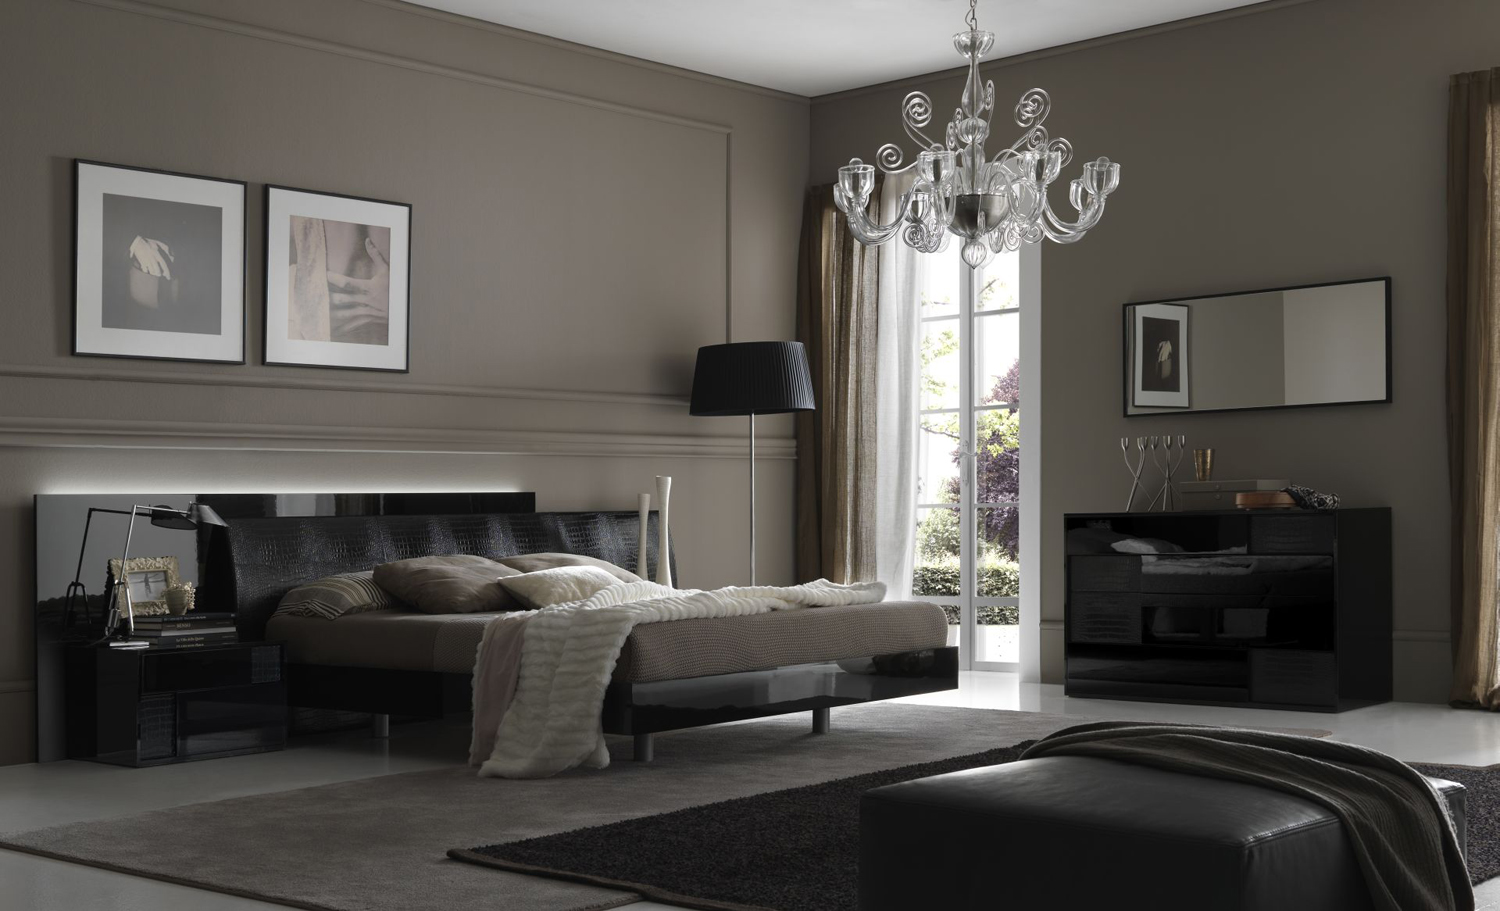 Bedroom decorating ideas from evinco for Modern bedroom